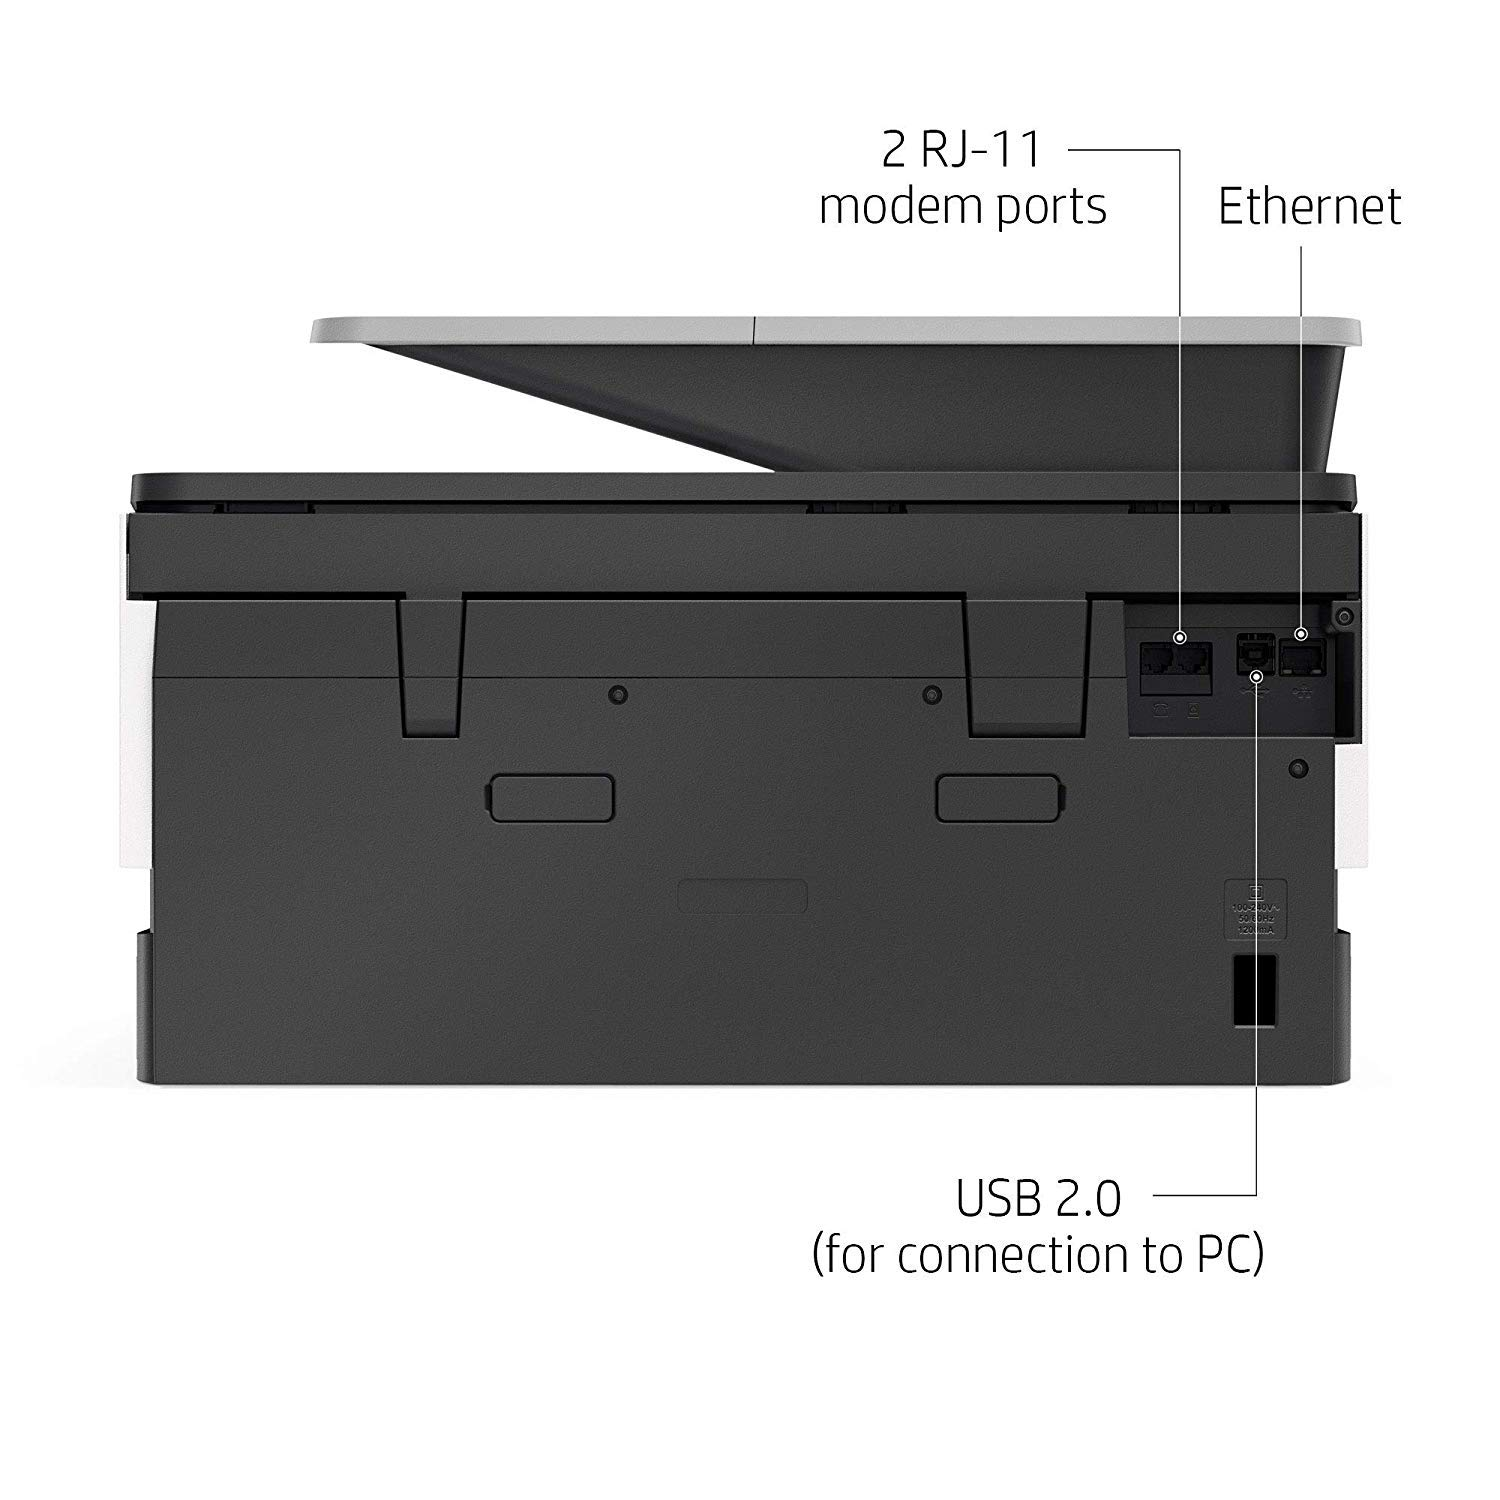 HP OfficeJet Pro 9015 All-in-One Wireless Printer, with Smart Tasks for Smart Office Productivity & Never Run Out of Ink with HP Instant Ink (1KR42A) by HP (Image #12)